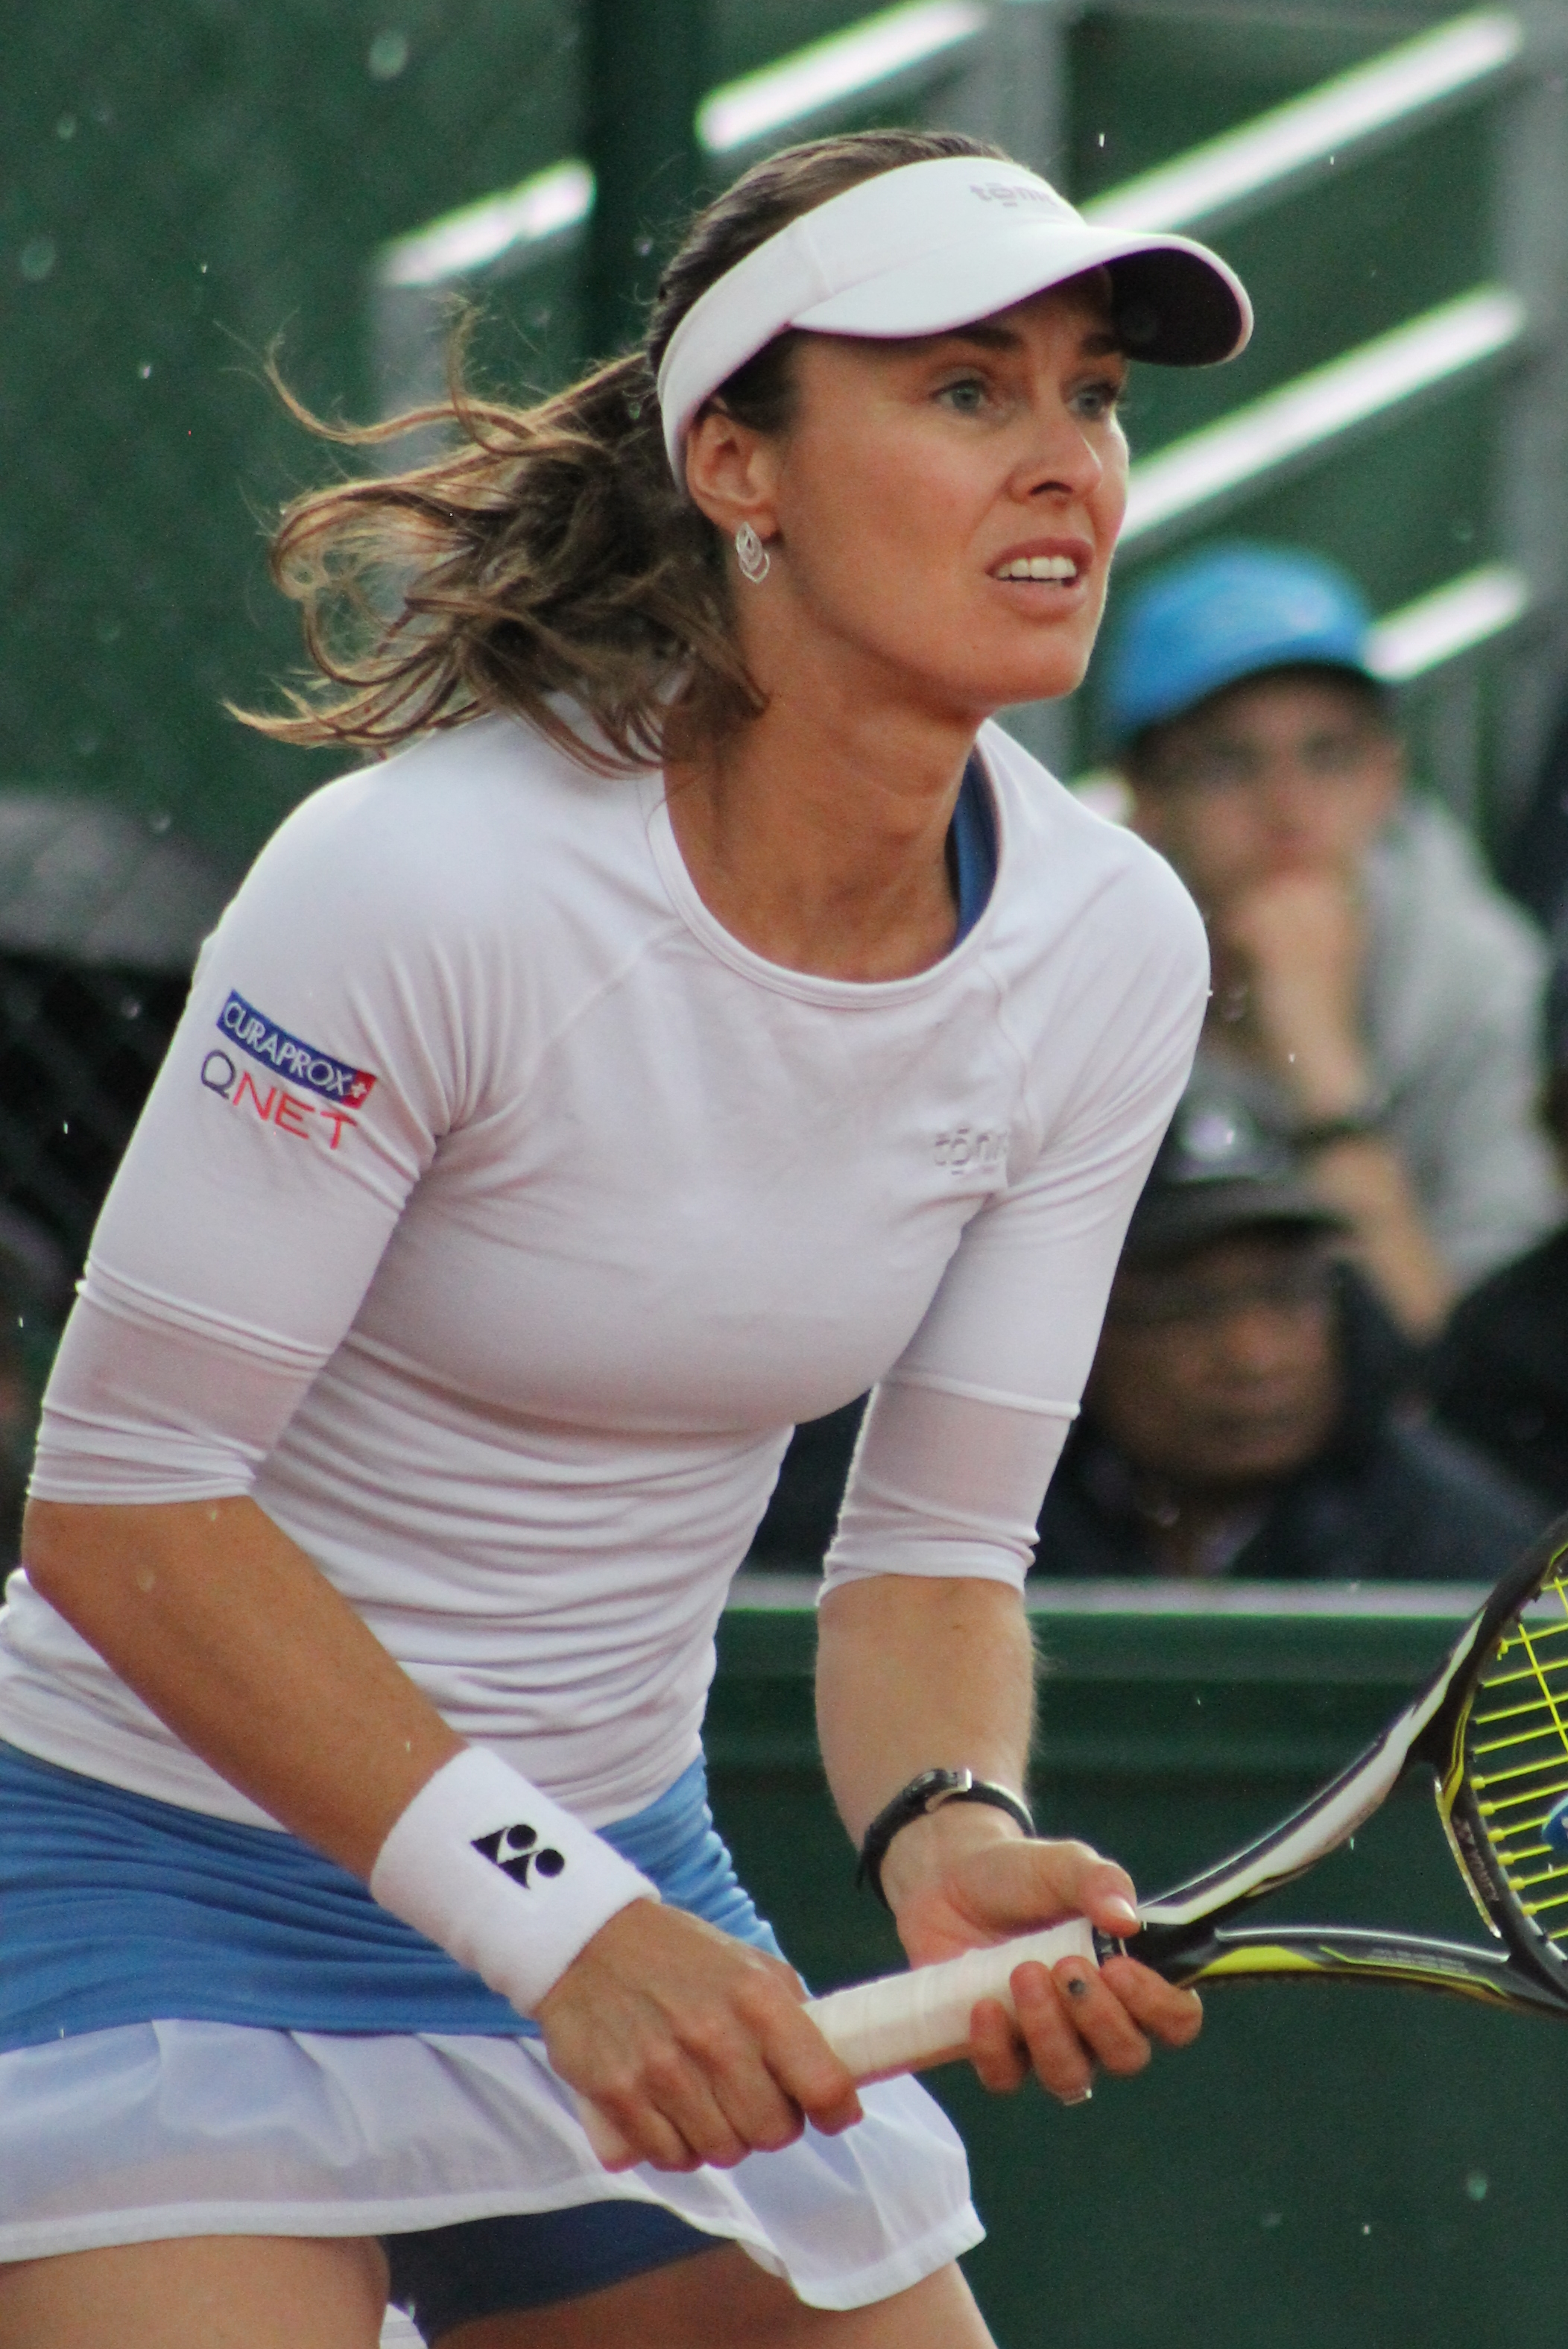 Martina Hingis - Wikipedia